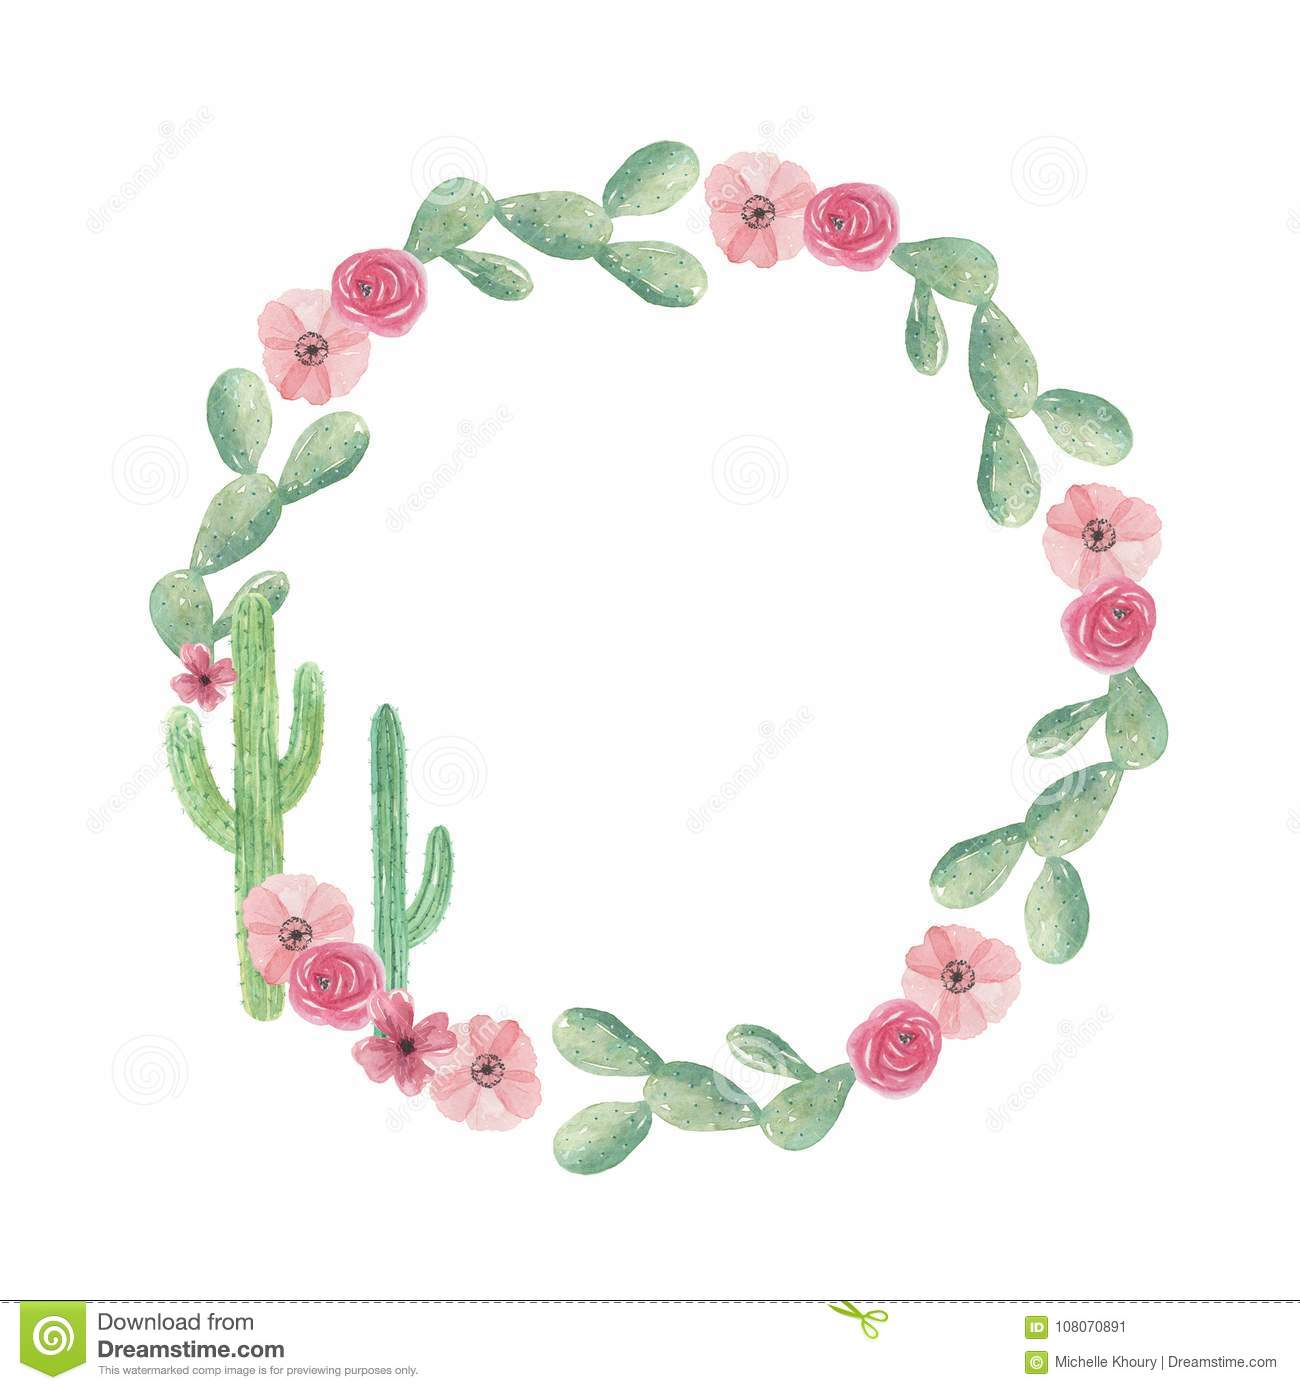 Watercolor Cactus Wreath Cacti Green Frame Wedding Spring Summer.